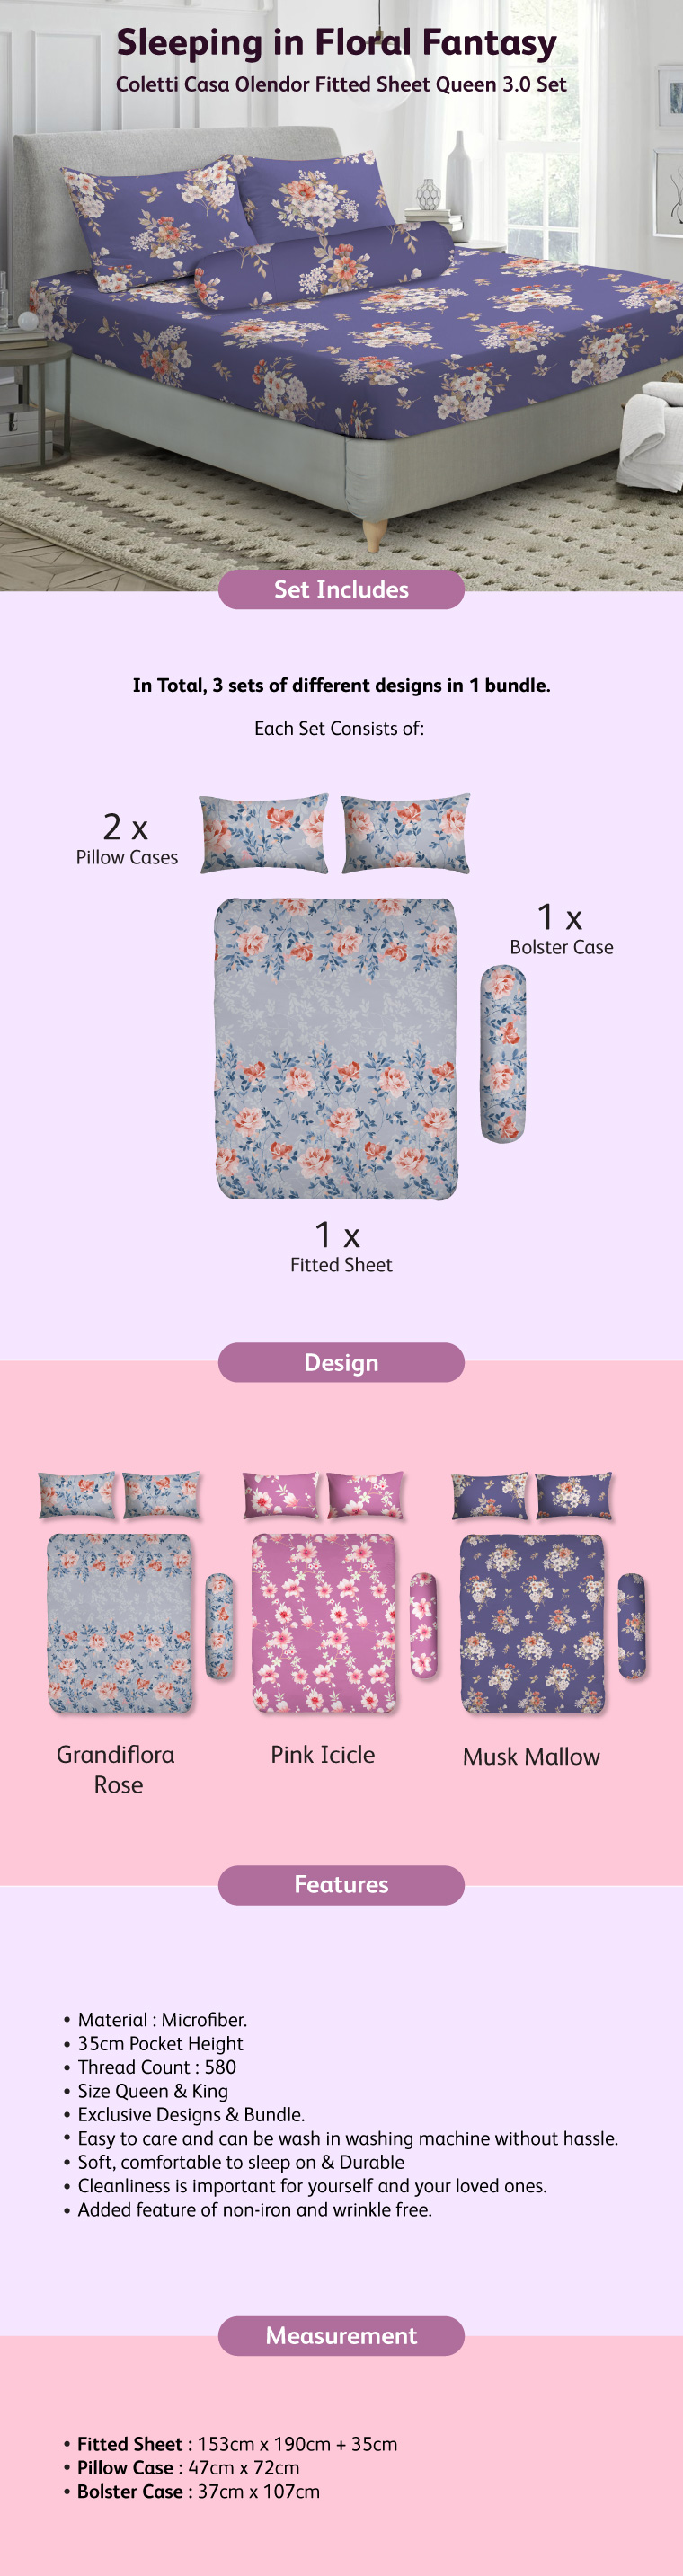 Product Content Detail Banner